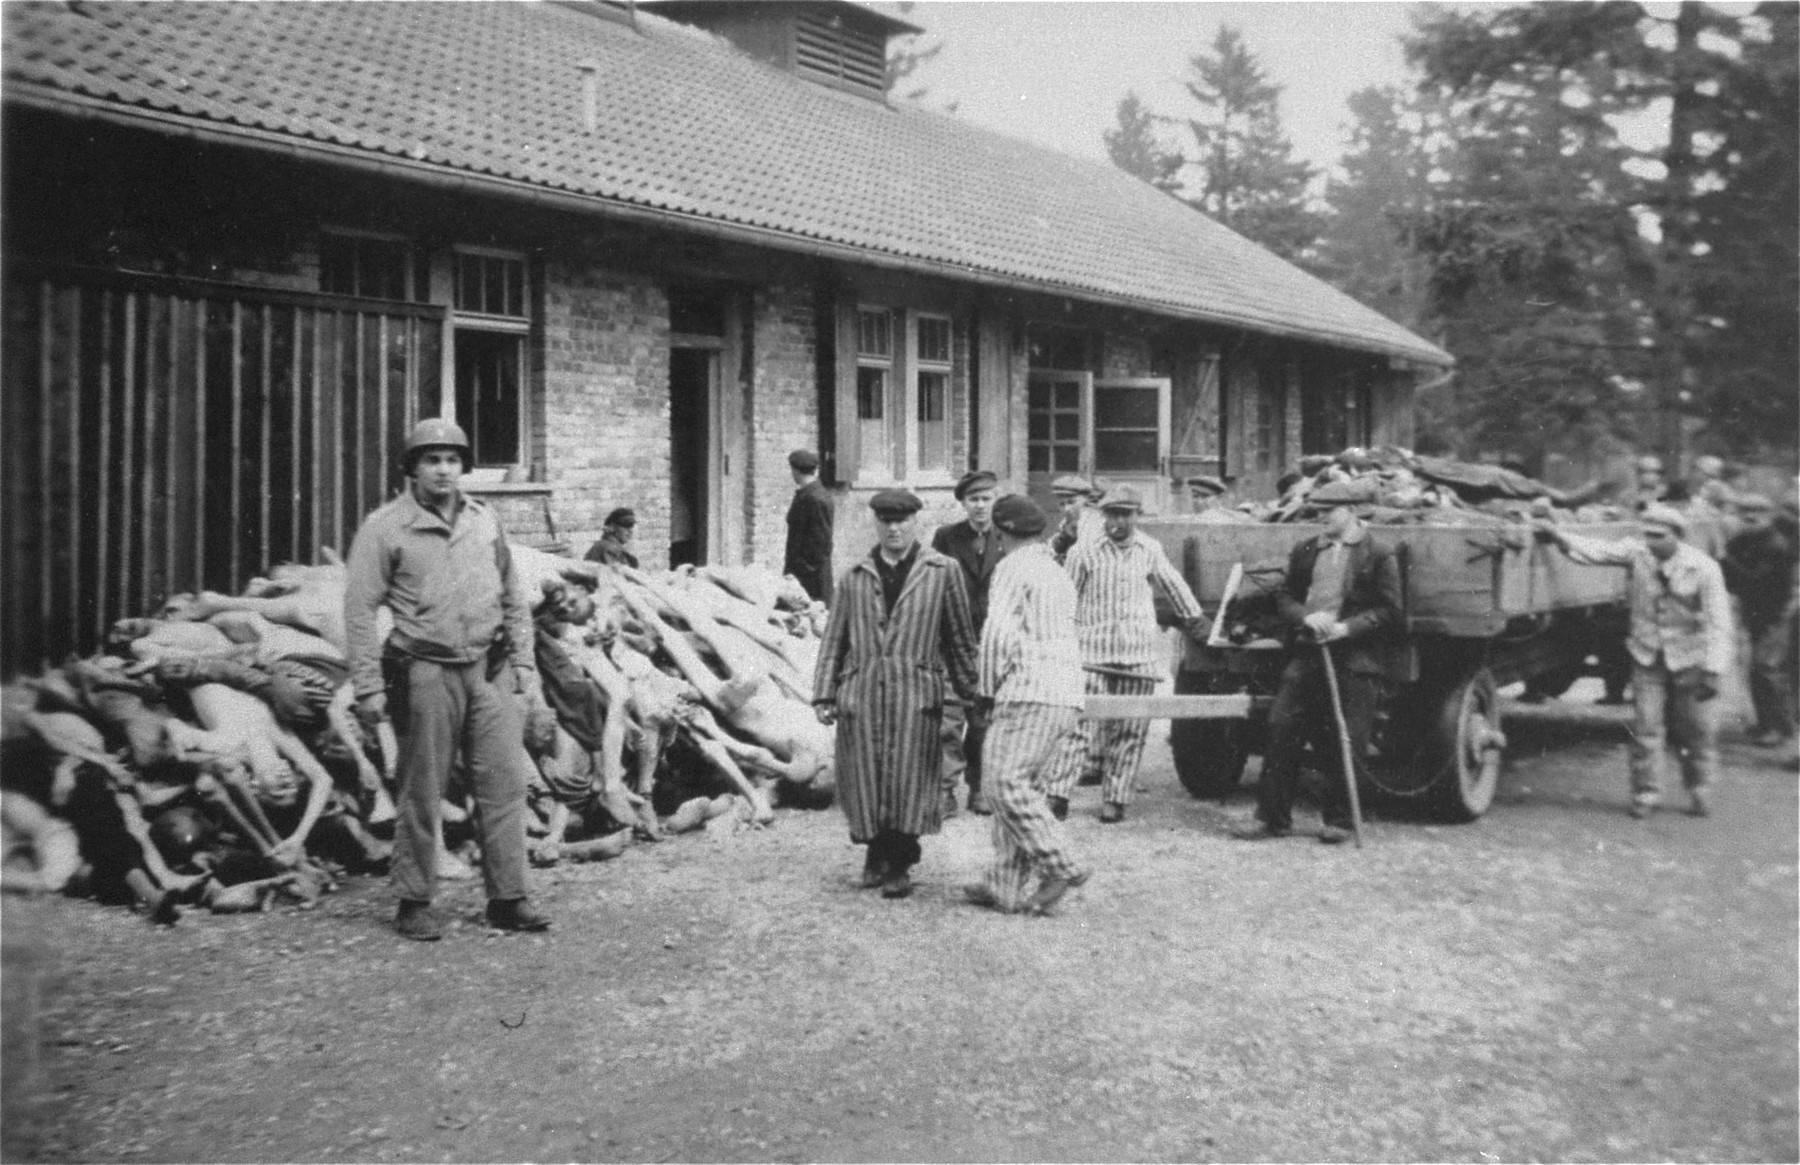 Under the supervision of an American soldier, survivors bring carts laden with corpses to a spot behind the crematorium.